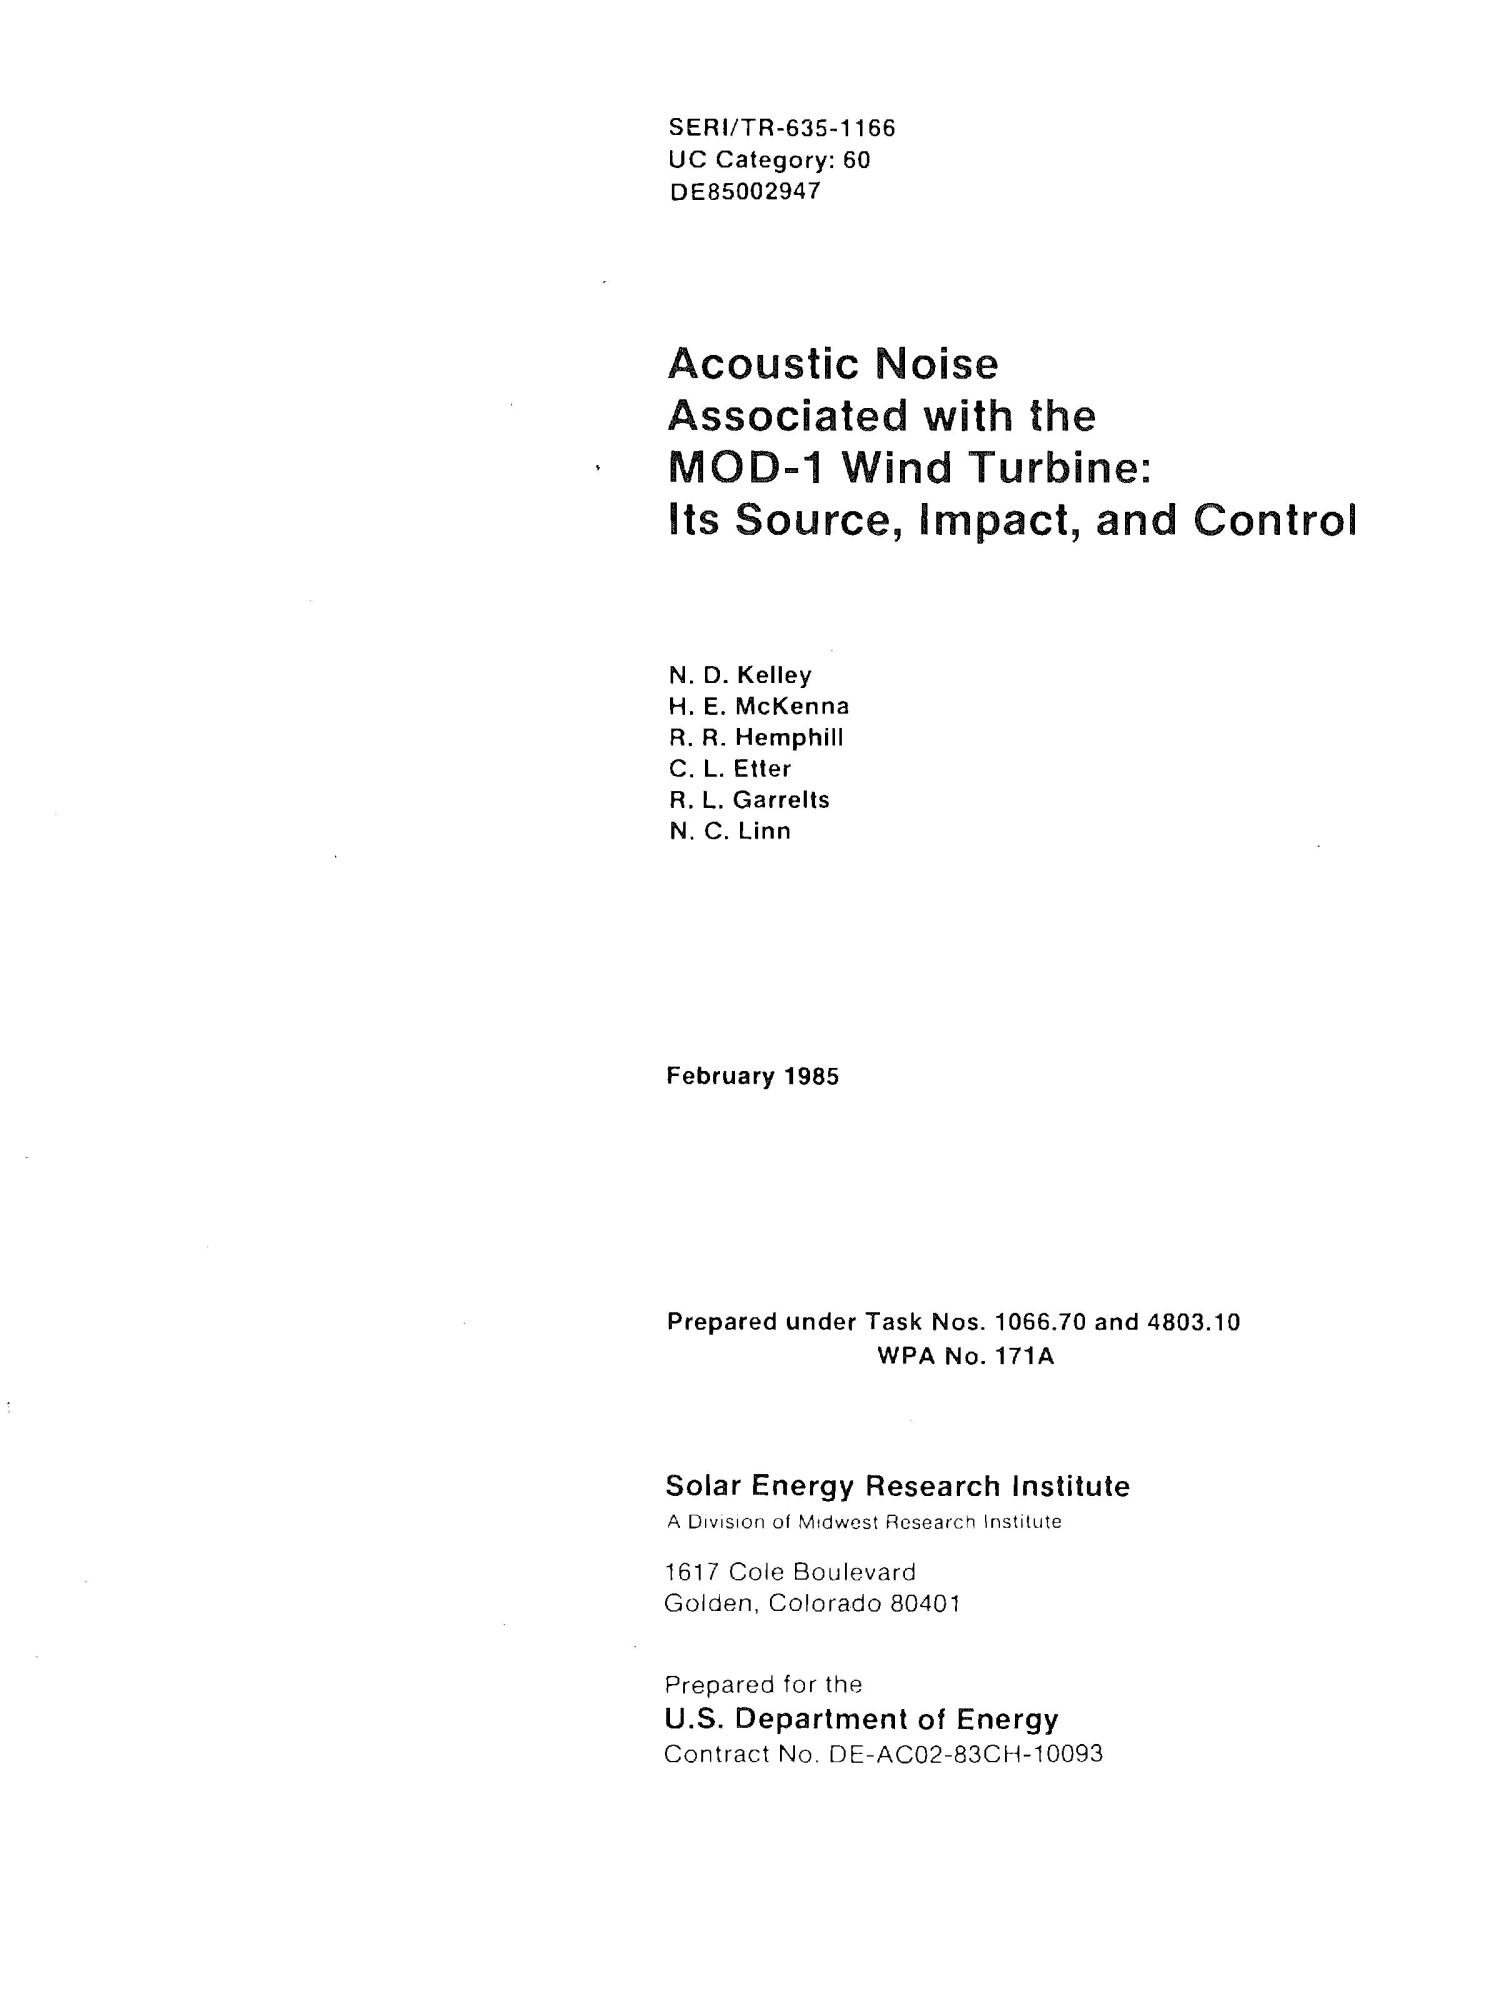 Acoustic noise associated with the MOD-1 wind turbine: its source, impact, and control                                                                                                      [Sequence #]: 1 of 262